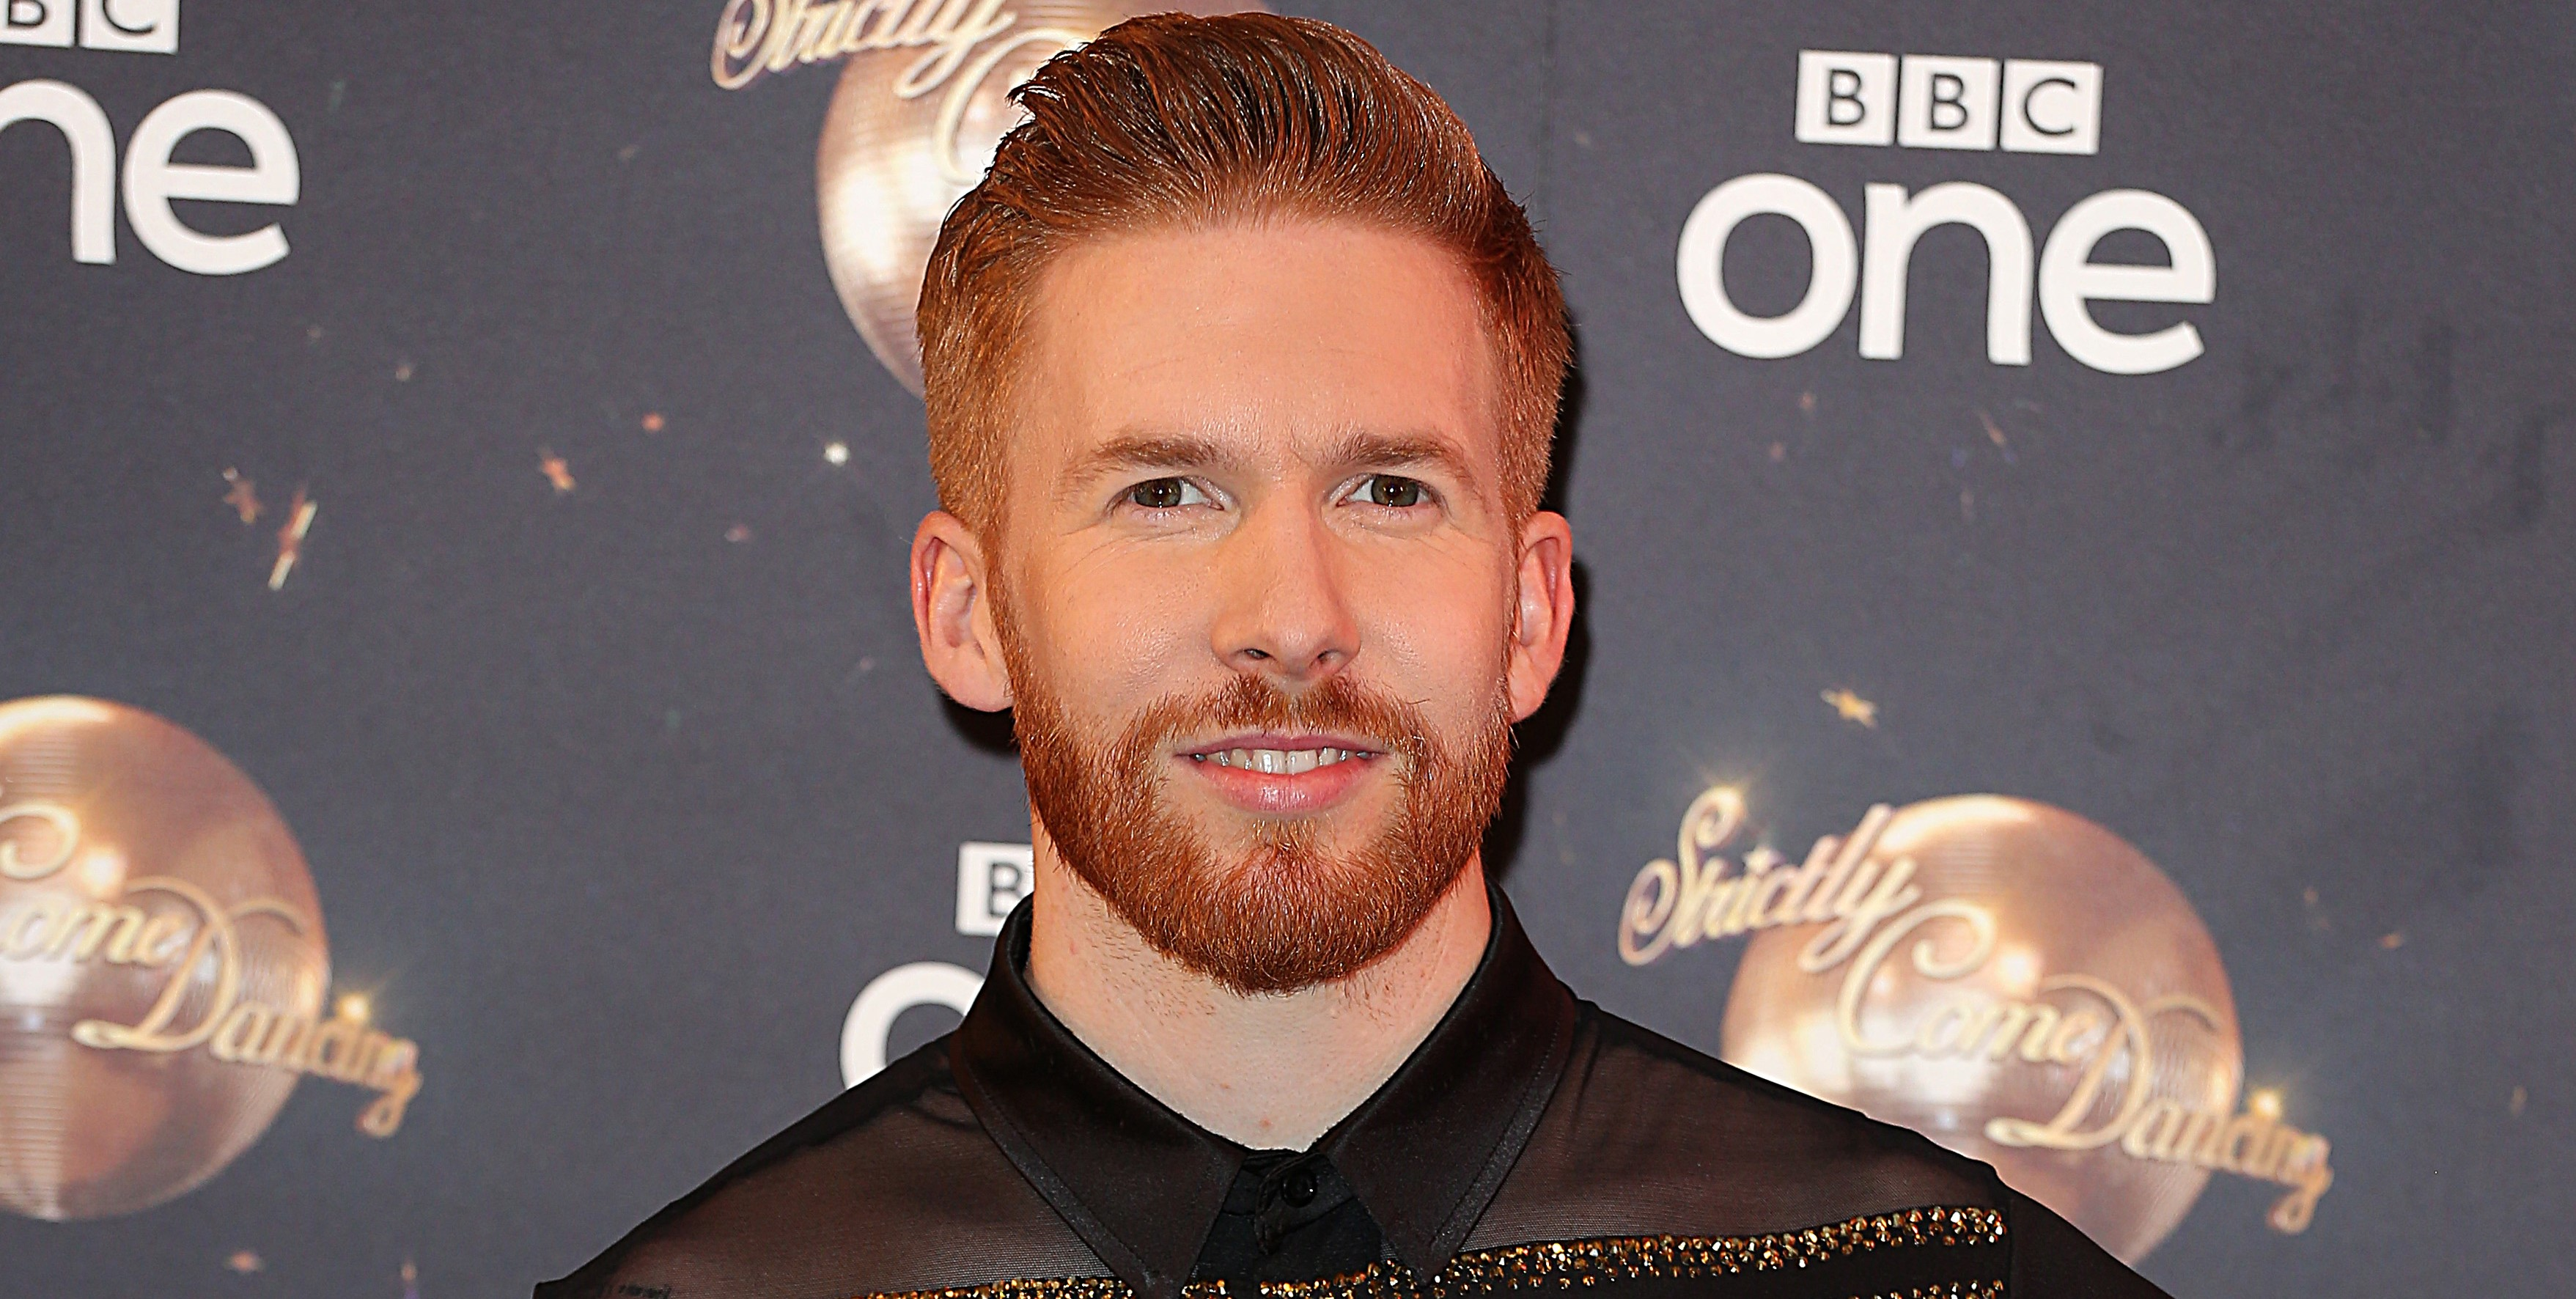 Strictly: Neil Jones 'finally gets celebrity partner' following split from Katya